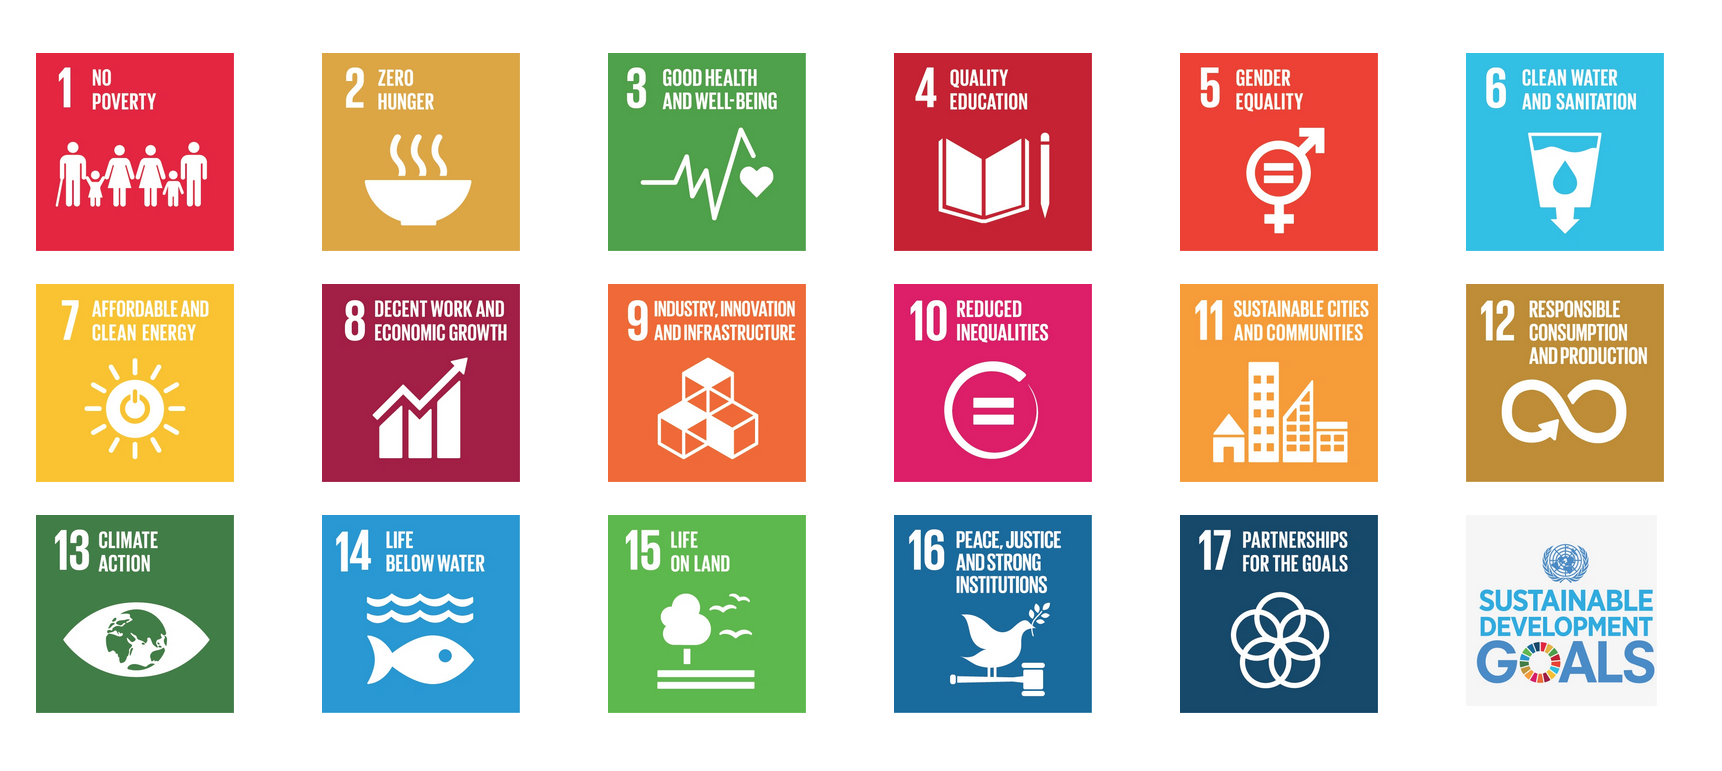 United Nations Adopts Sustainable Development Goals.